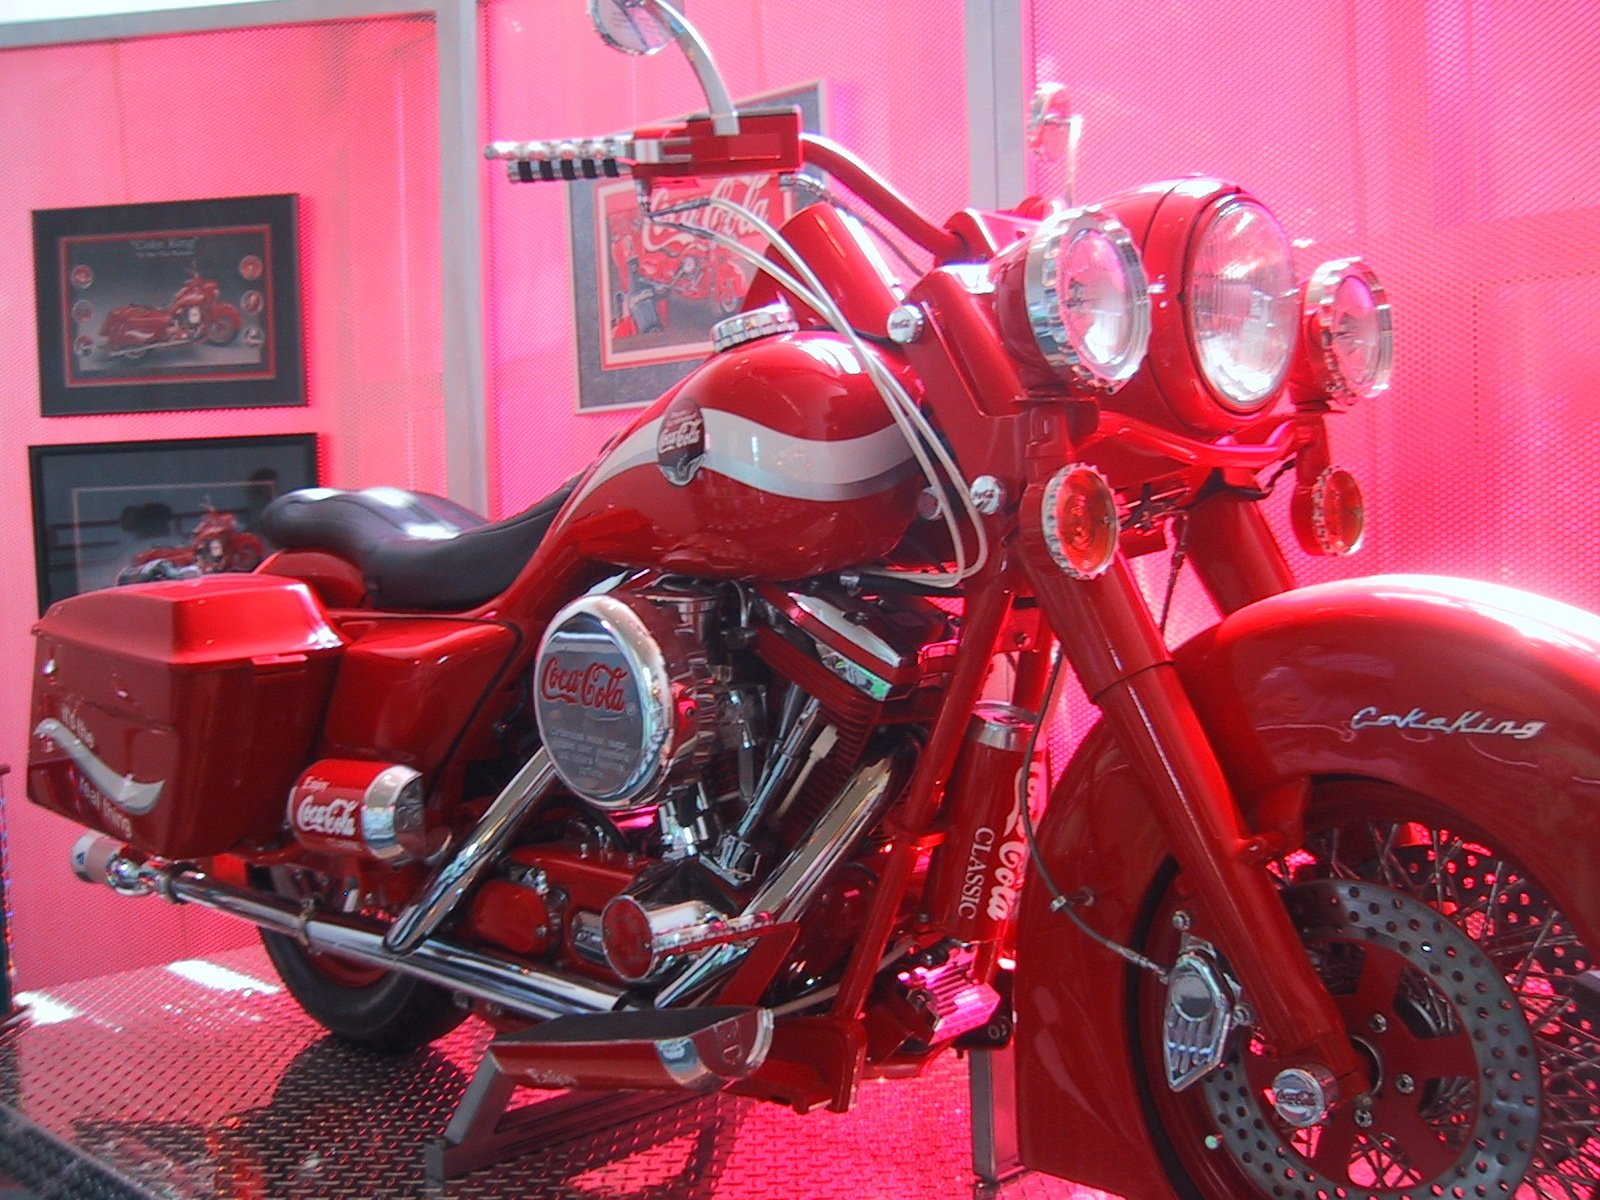 Products - Coca Cola  Motorcycle Wallpaper